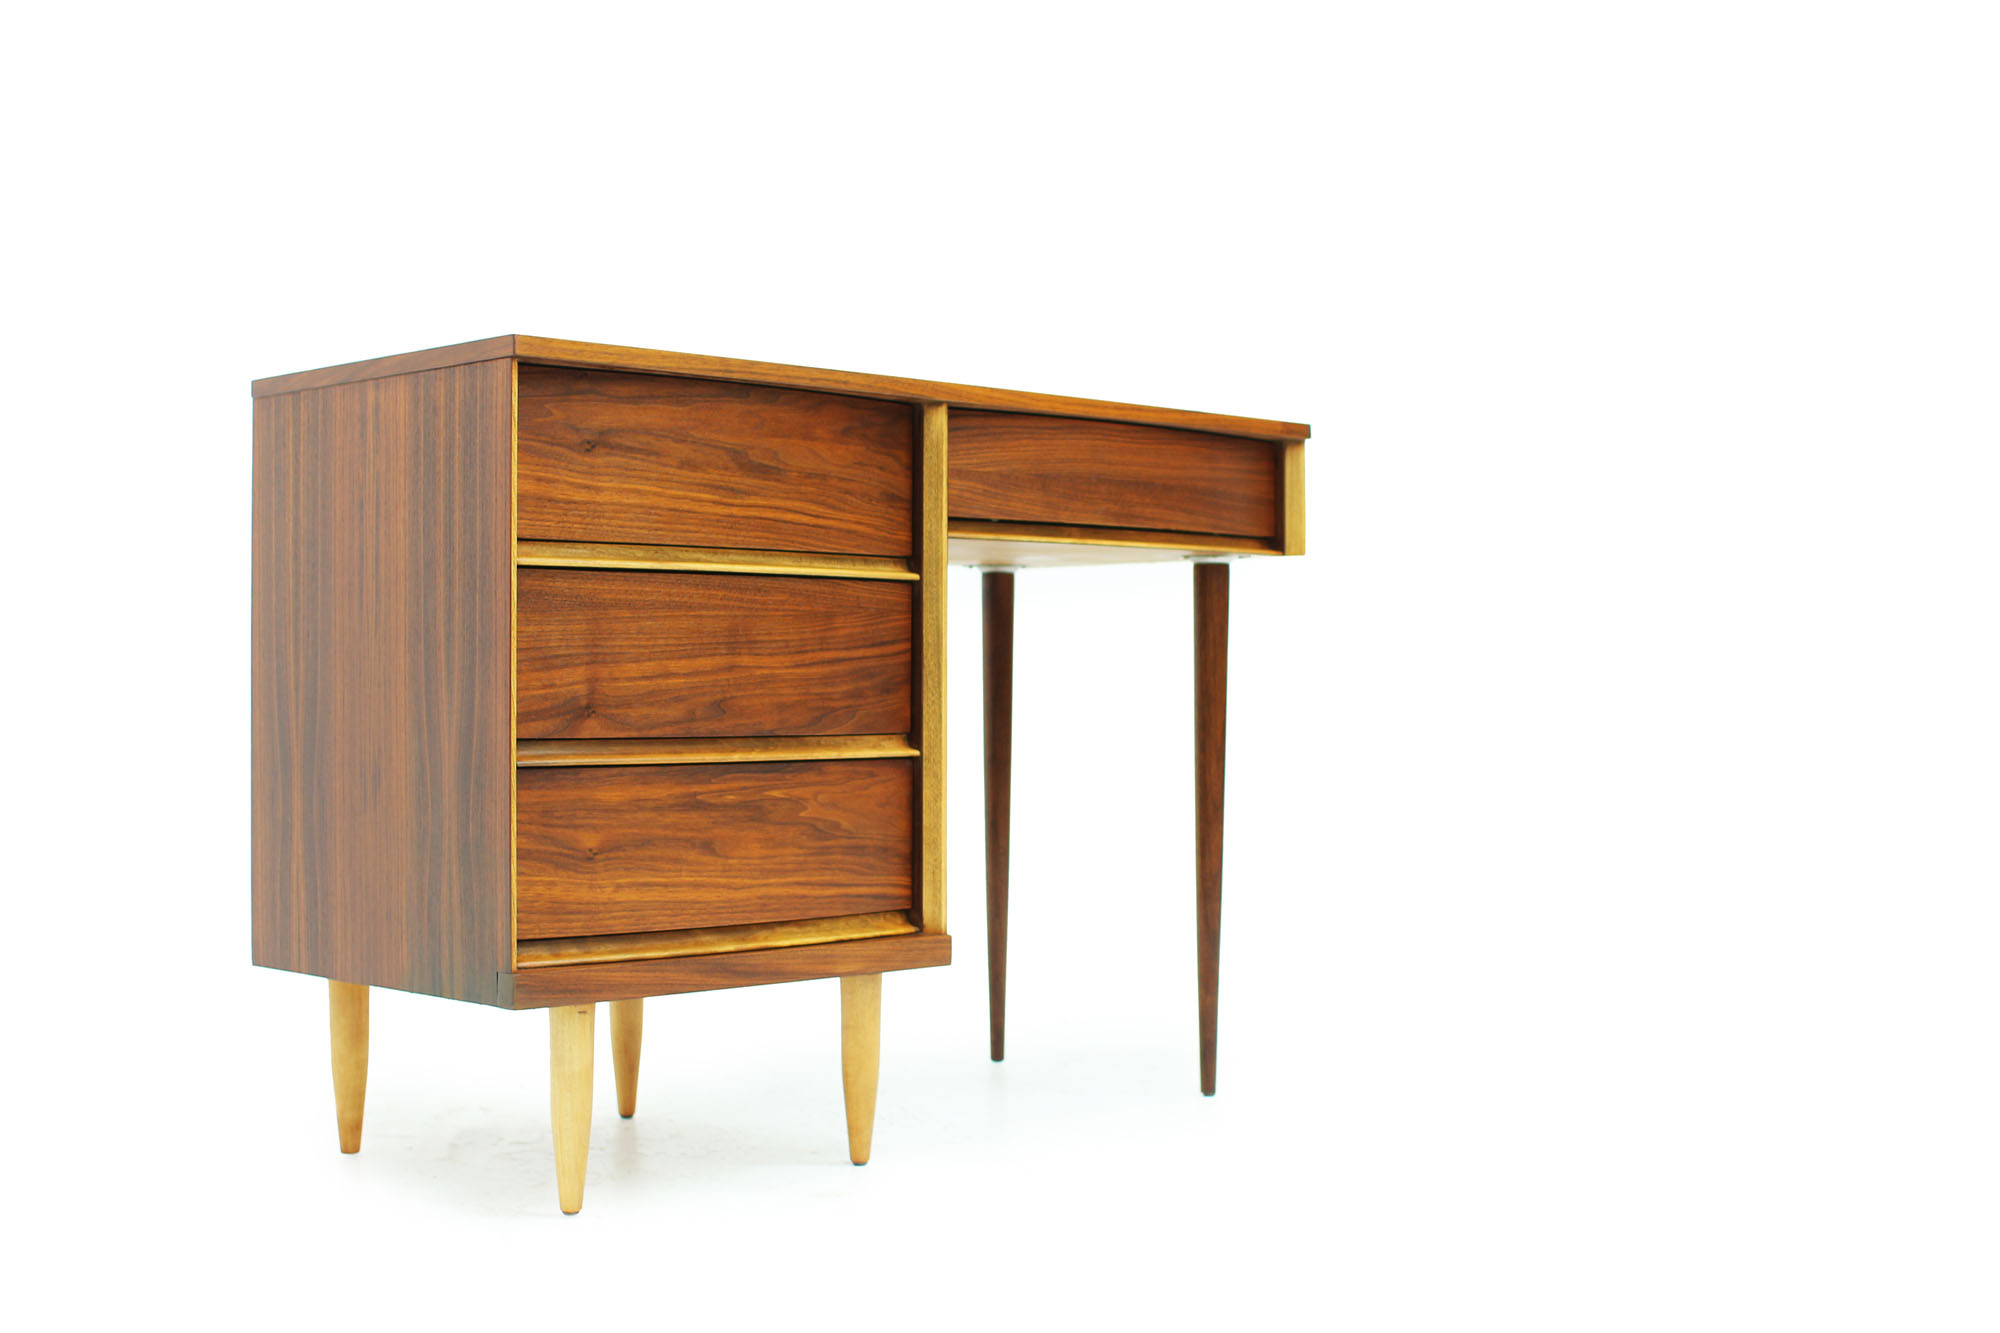 MCM Walnut Desk with Curved Drawers and long Legs (4).jpg